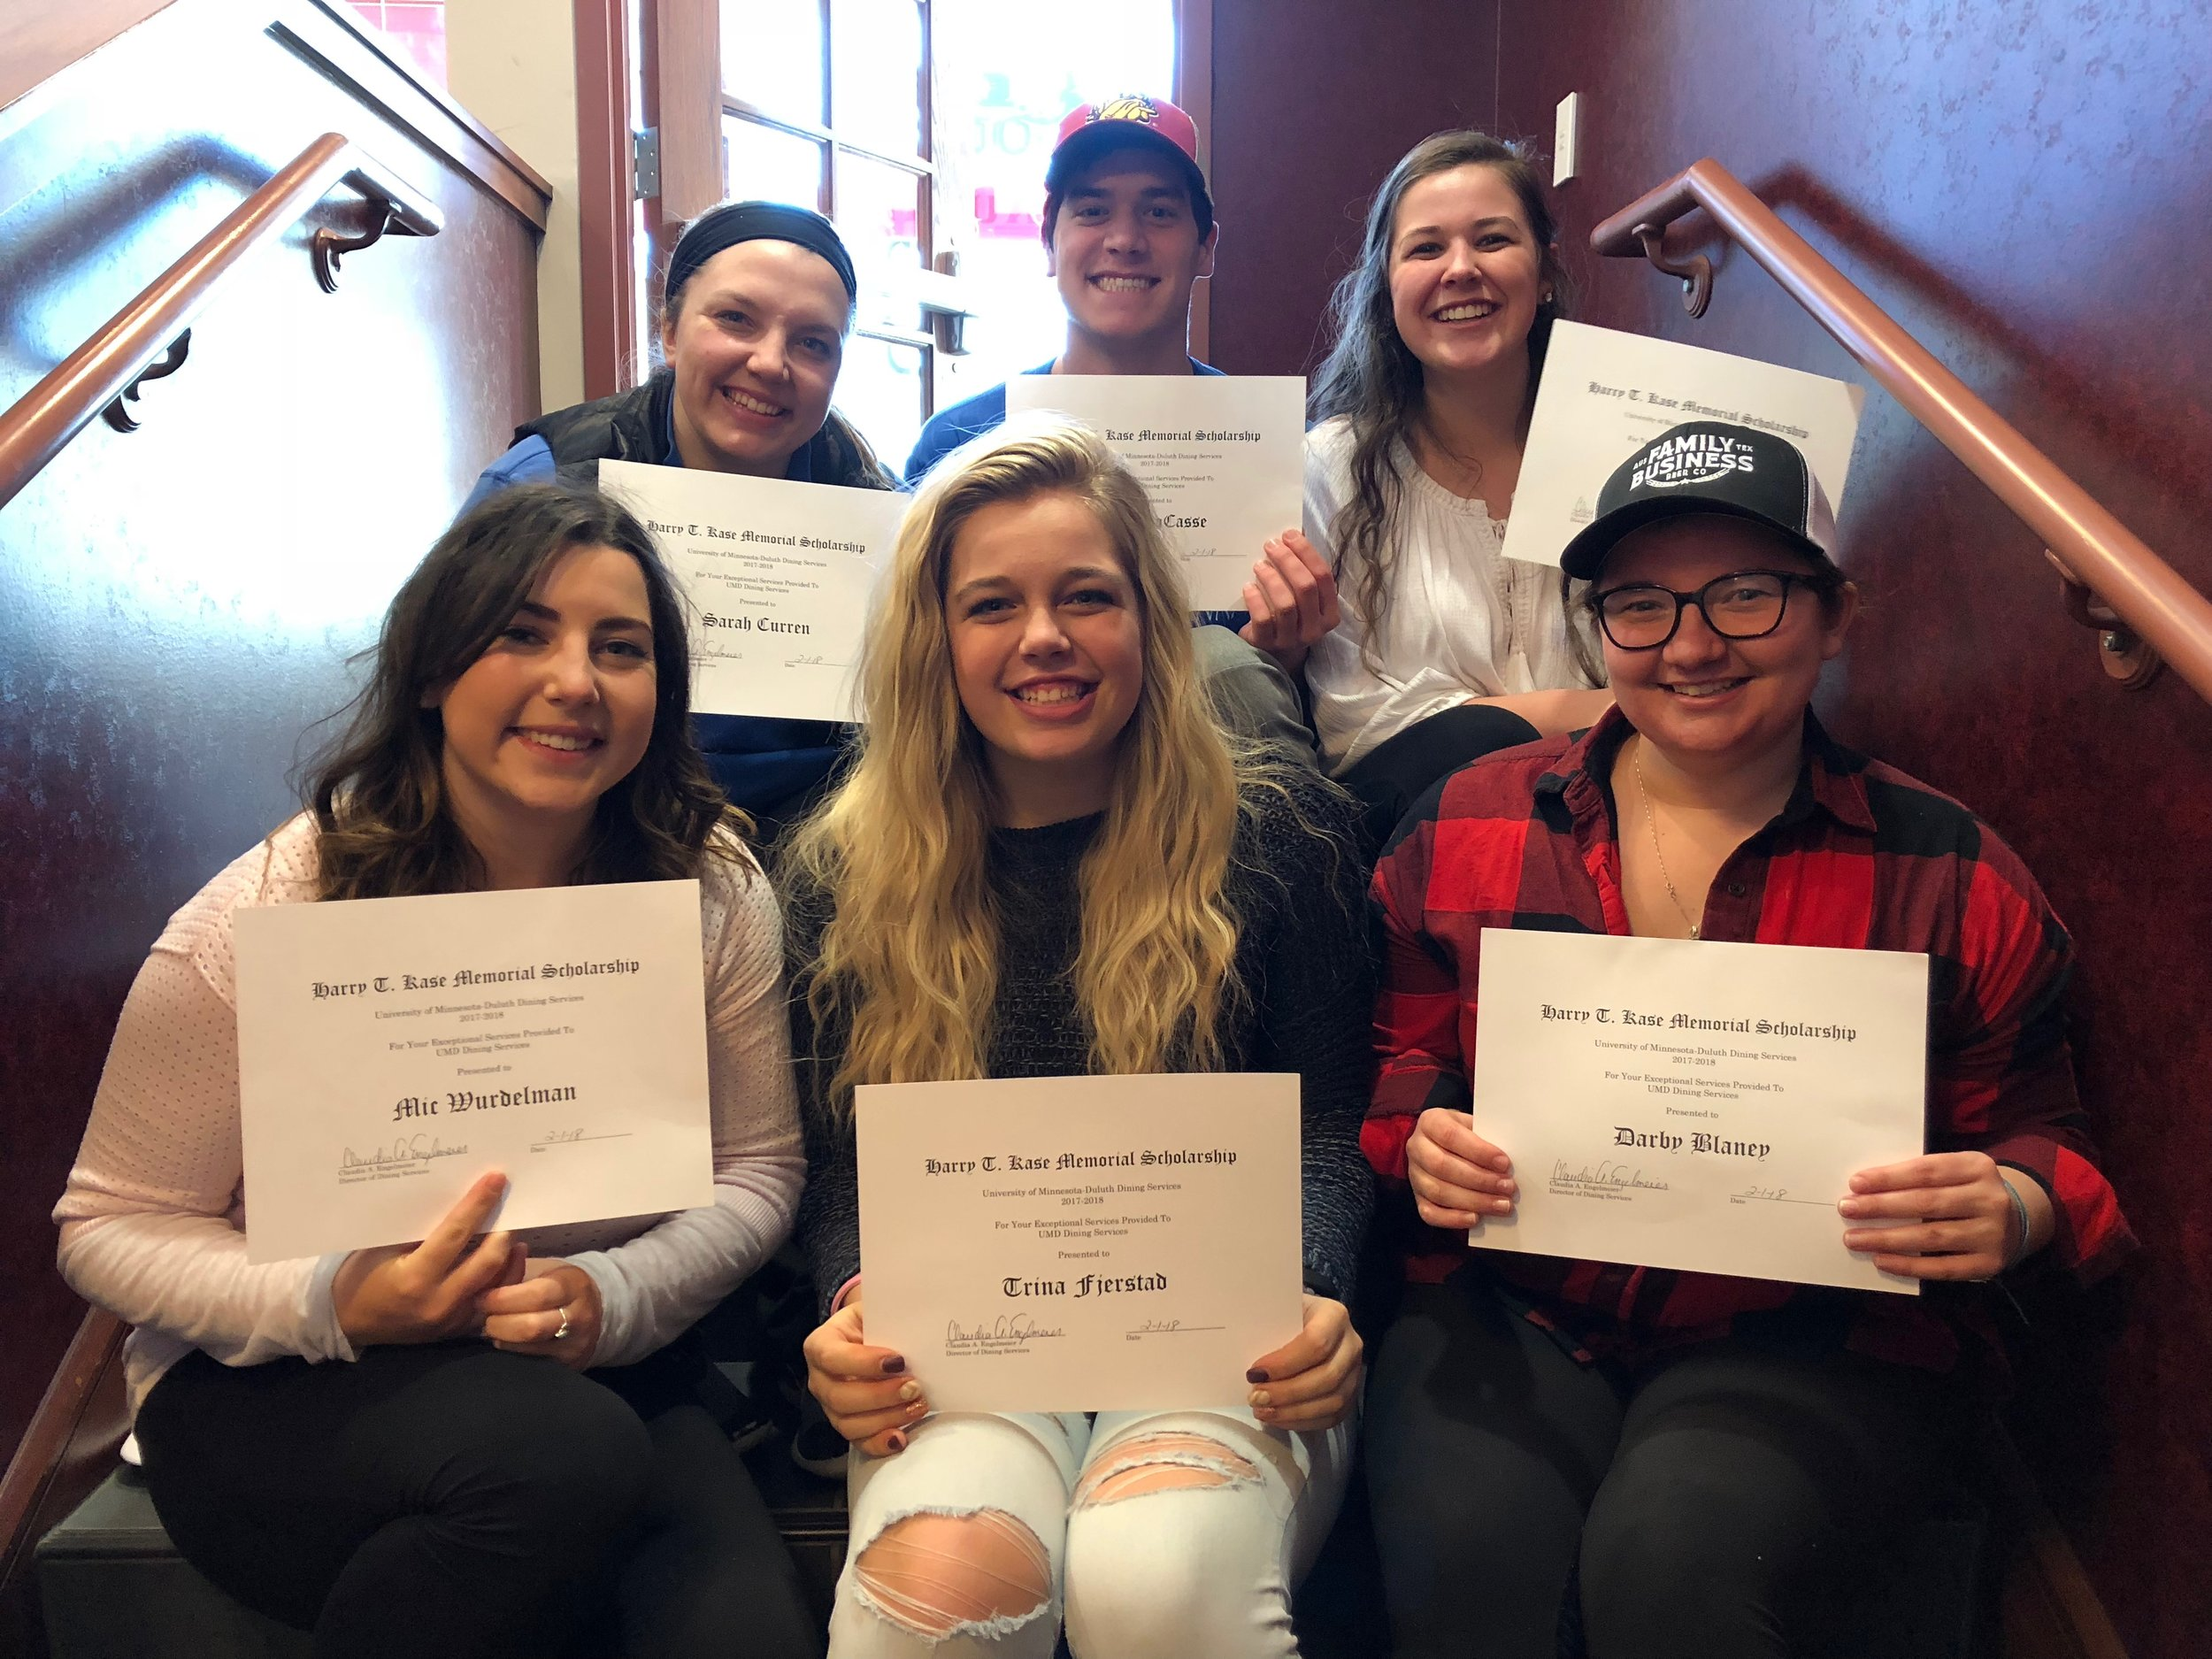 UMD students proudly display their scholarships.  Back row, from left to right: Sarah Curren, Matt LaCasse, Ellie Strafelda Front row, from left to right: Michaela Wurdelman, Trina Fjerstad, Darby Blaney Photo by: Krista Mathes